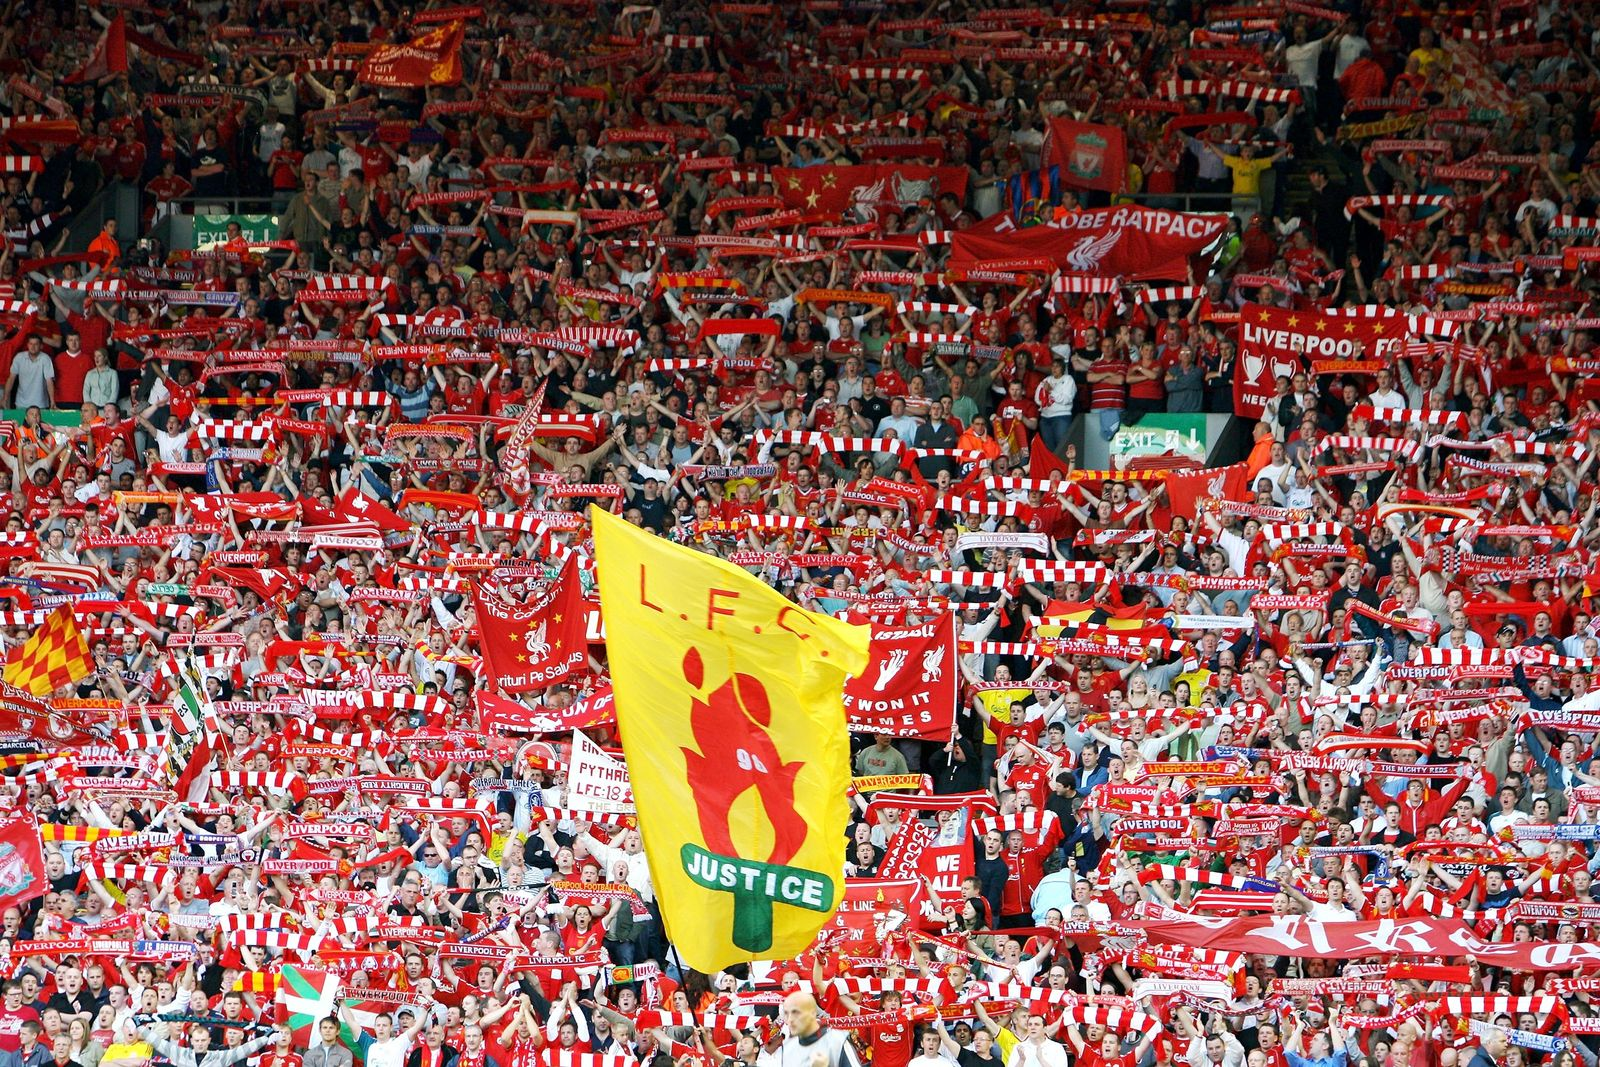 Liverpool / The Kop